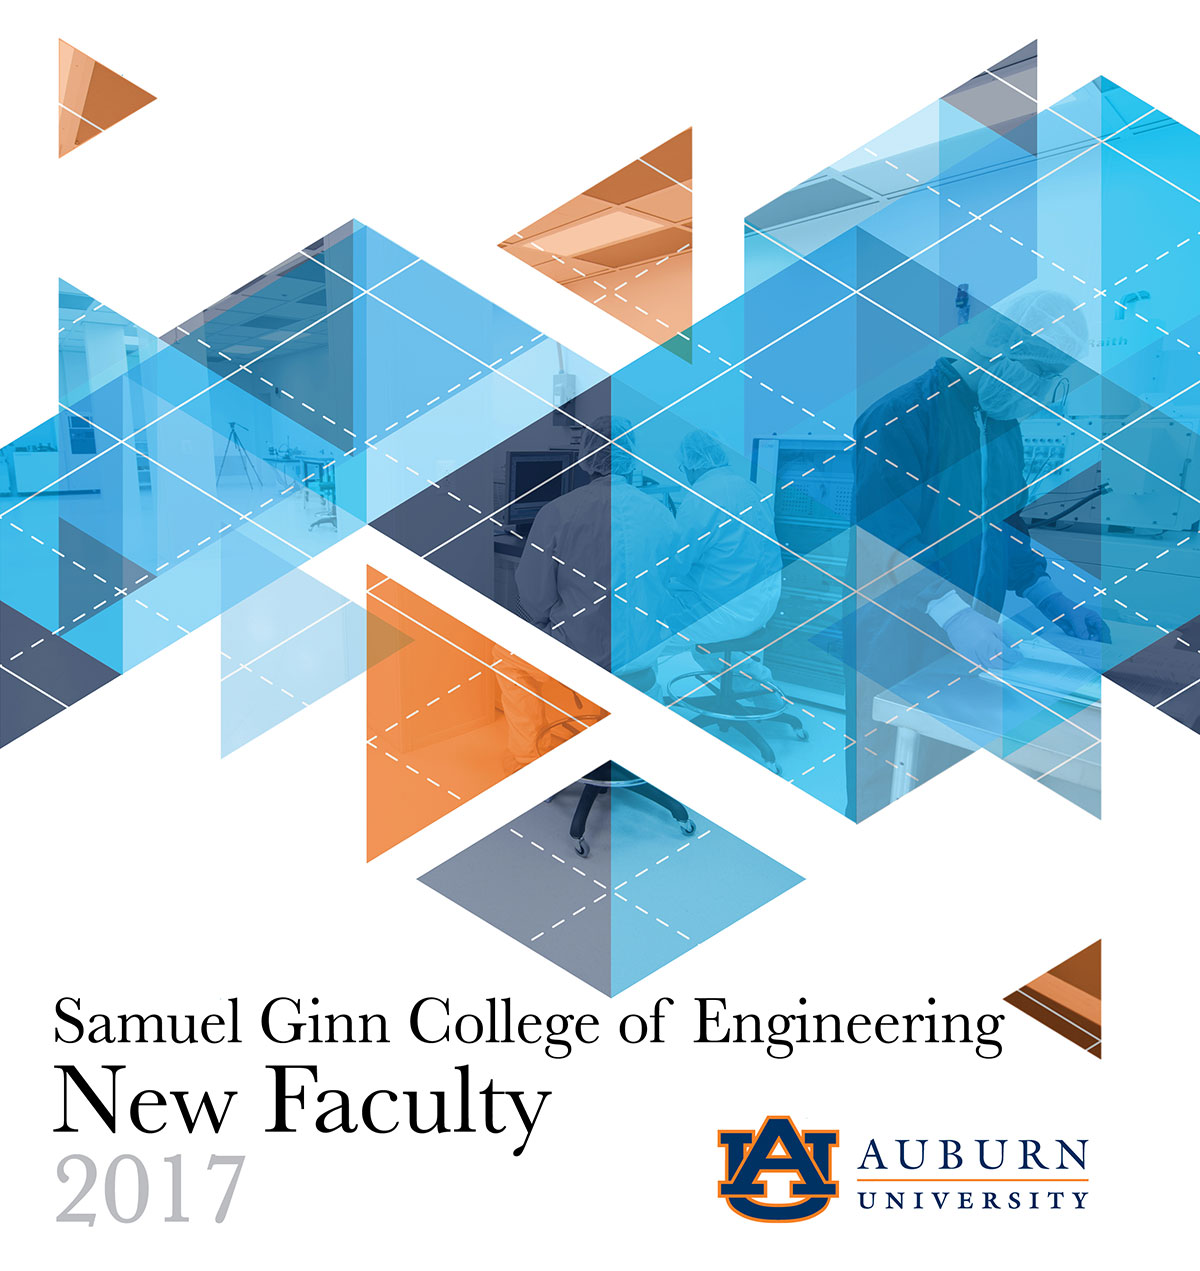 Samuel Ginn College of Engineering New Faculty 2017